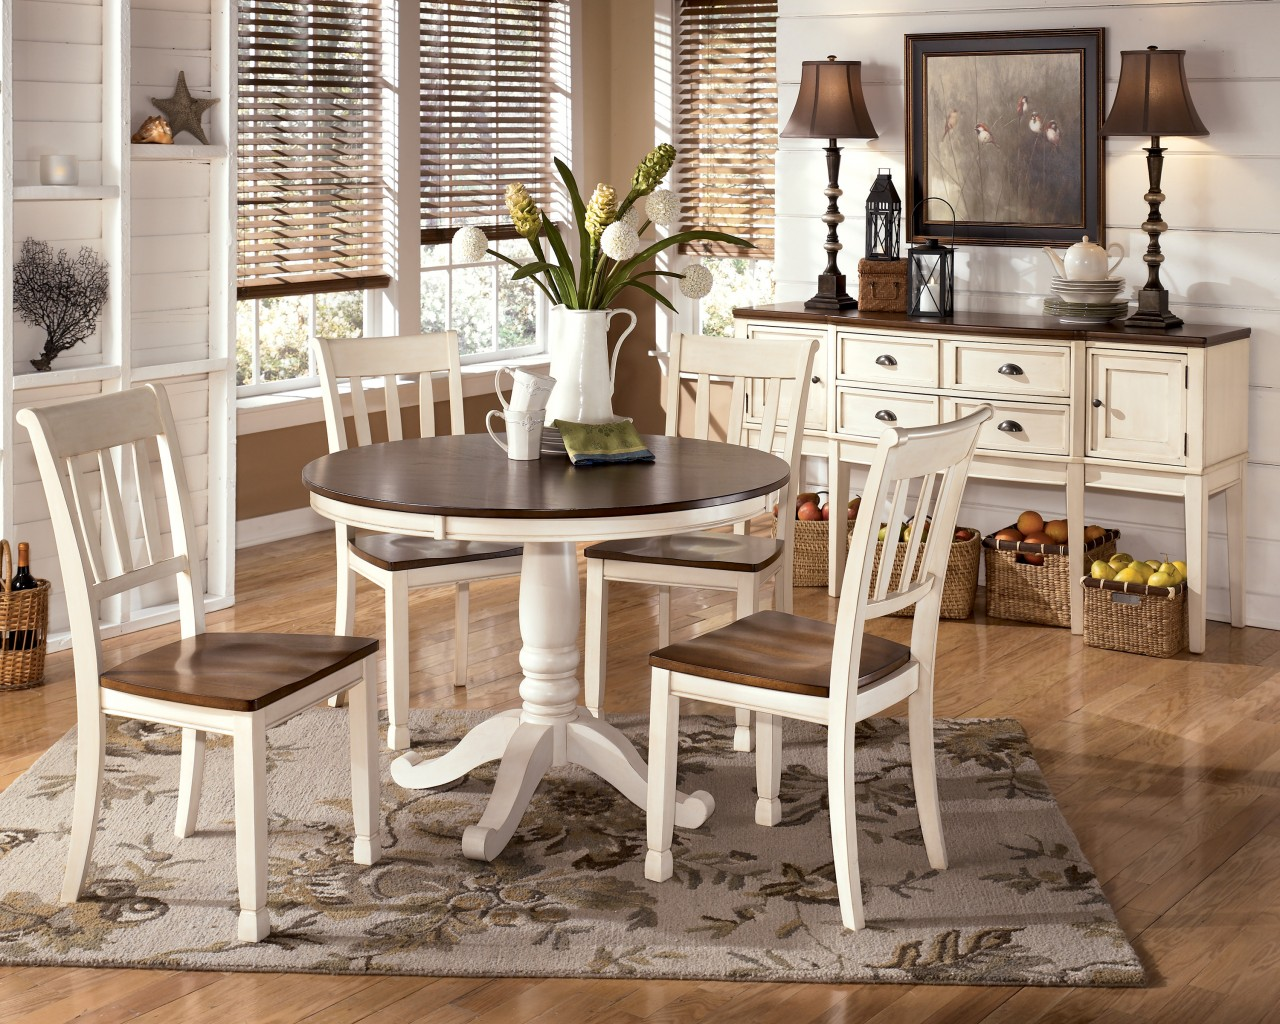 Off White Dining Table Ashley Set Diy Shabby Chic And Chairs